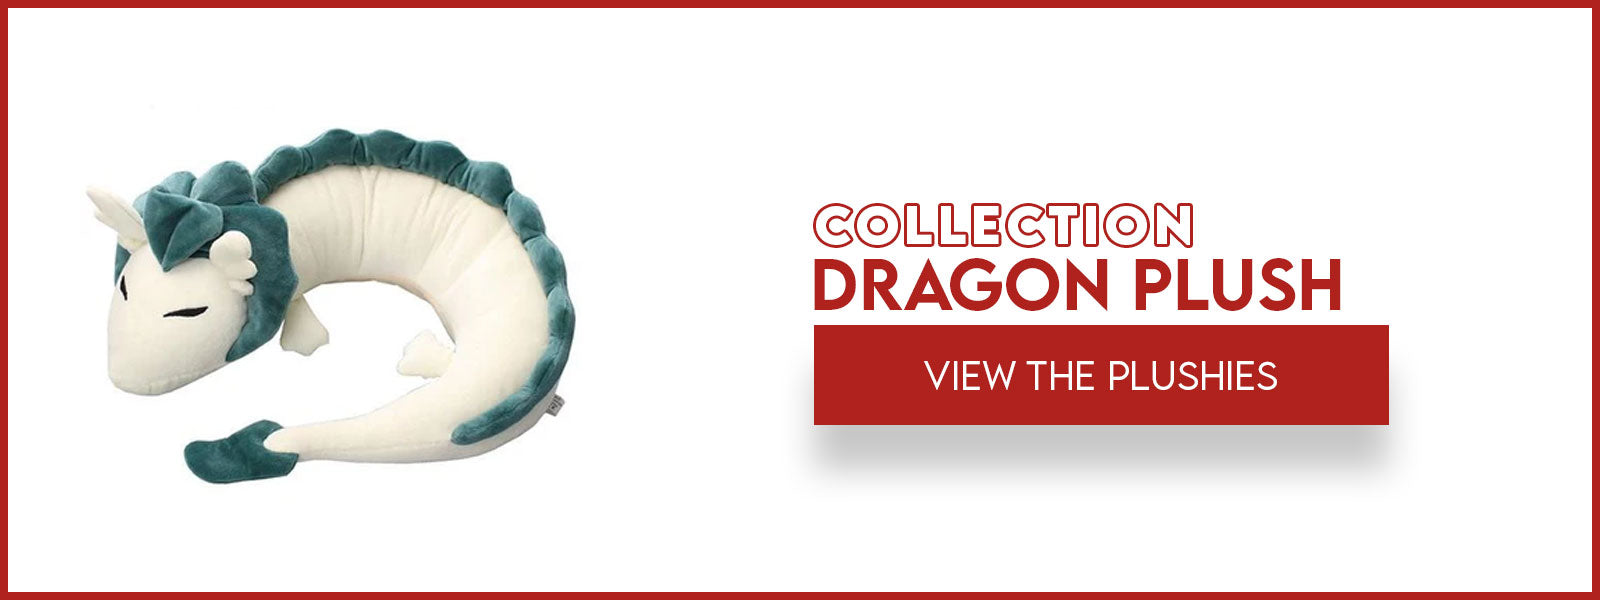 Collections Dragon Plush